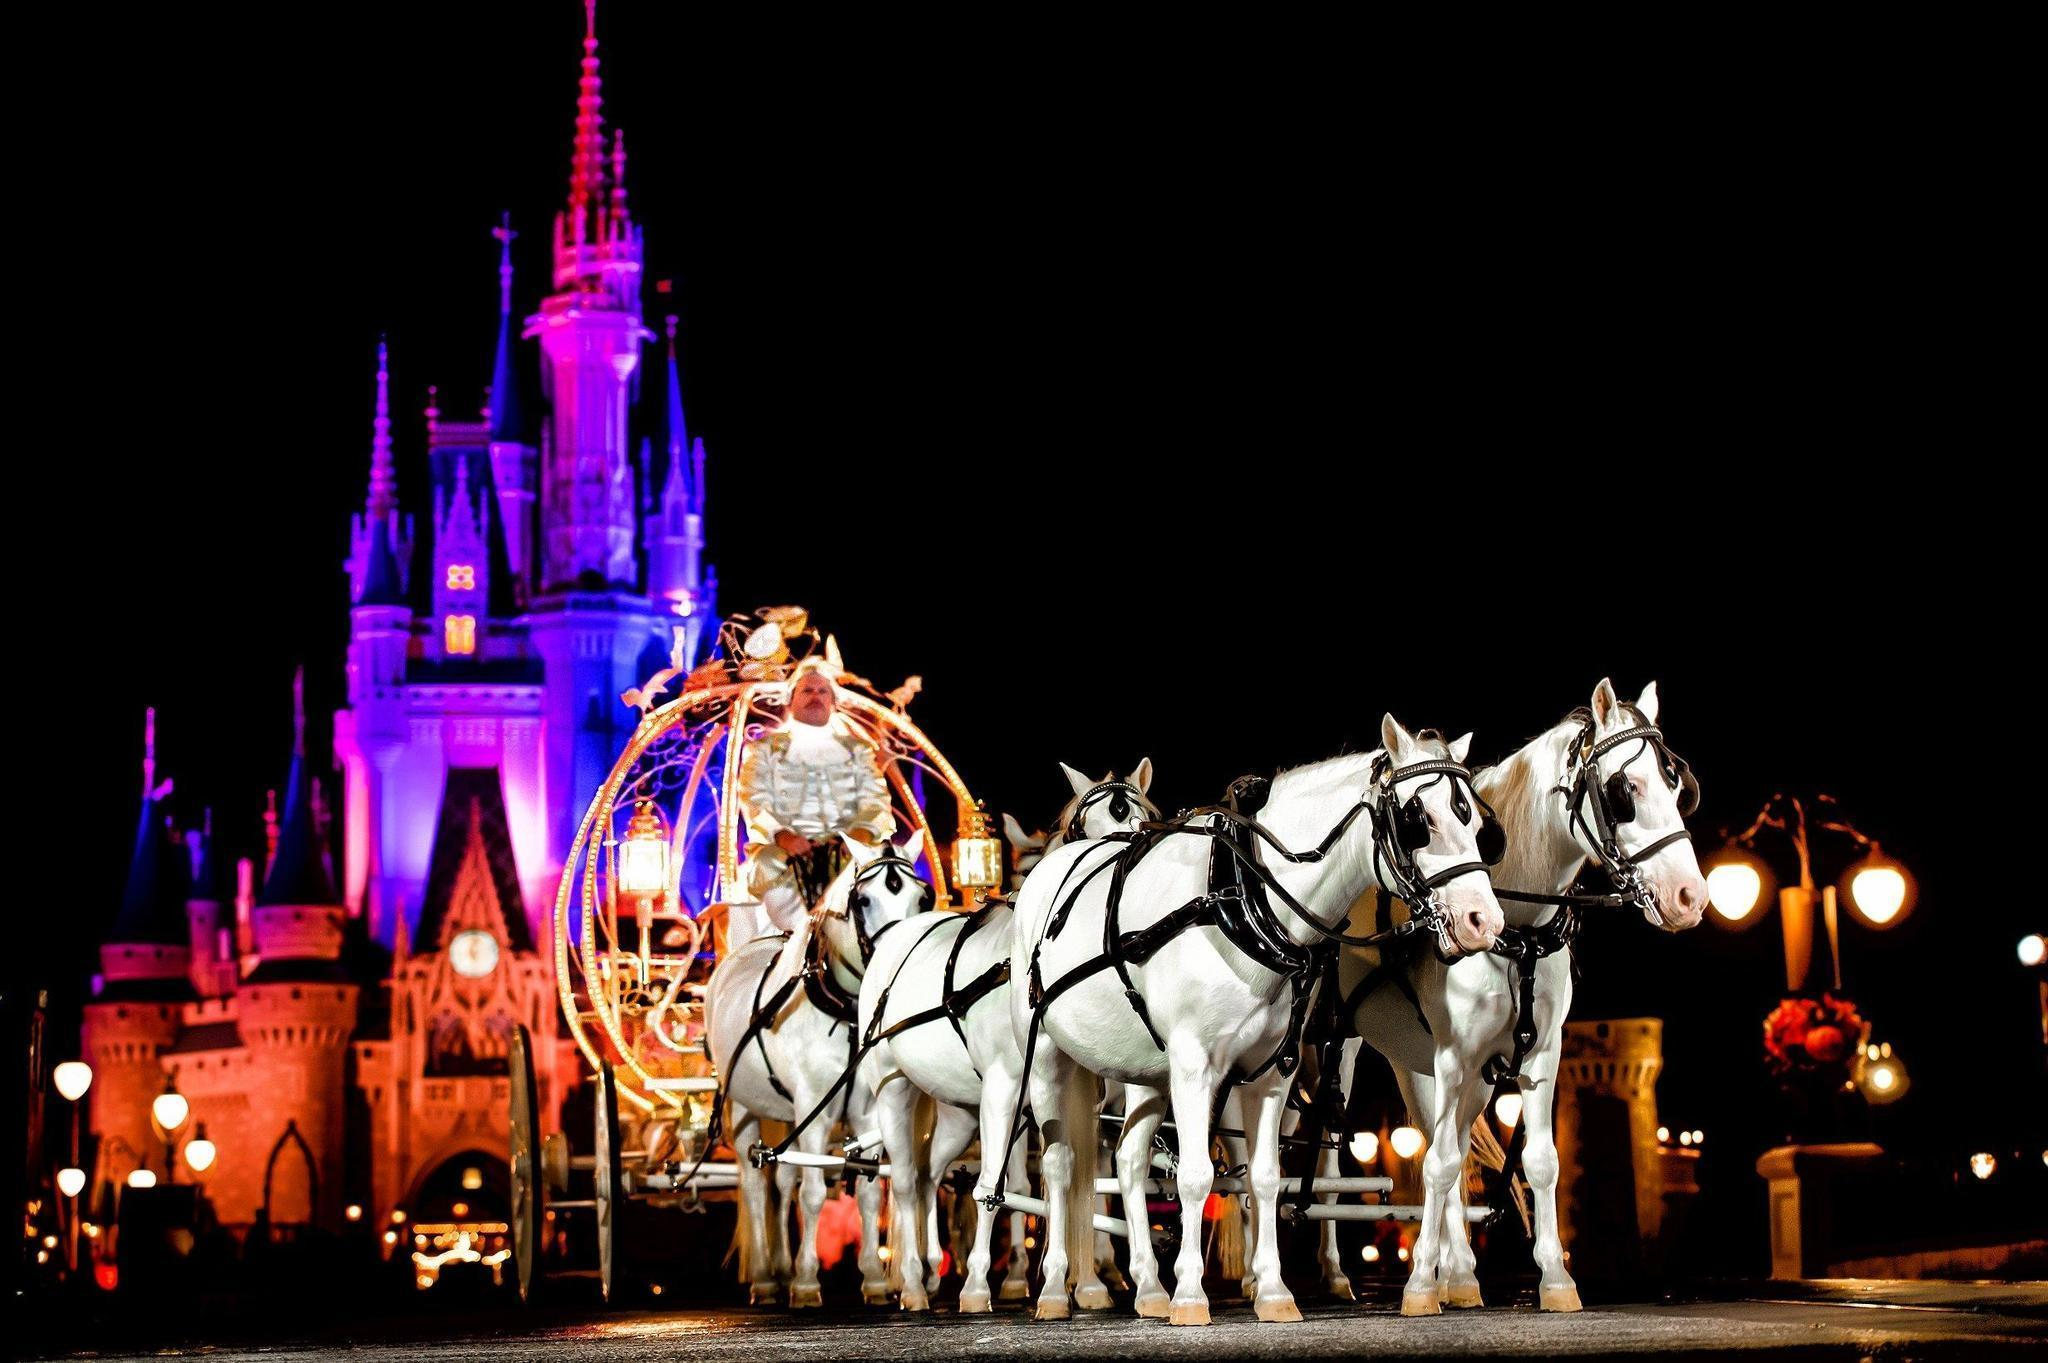 Weddings at disney parks and resorts - Weddings At Disney Parks And Resorts 34